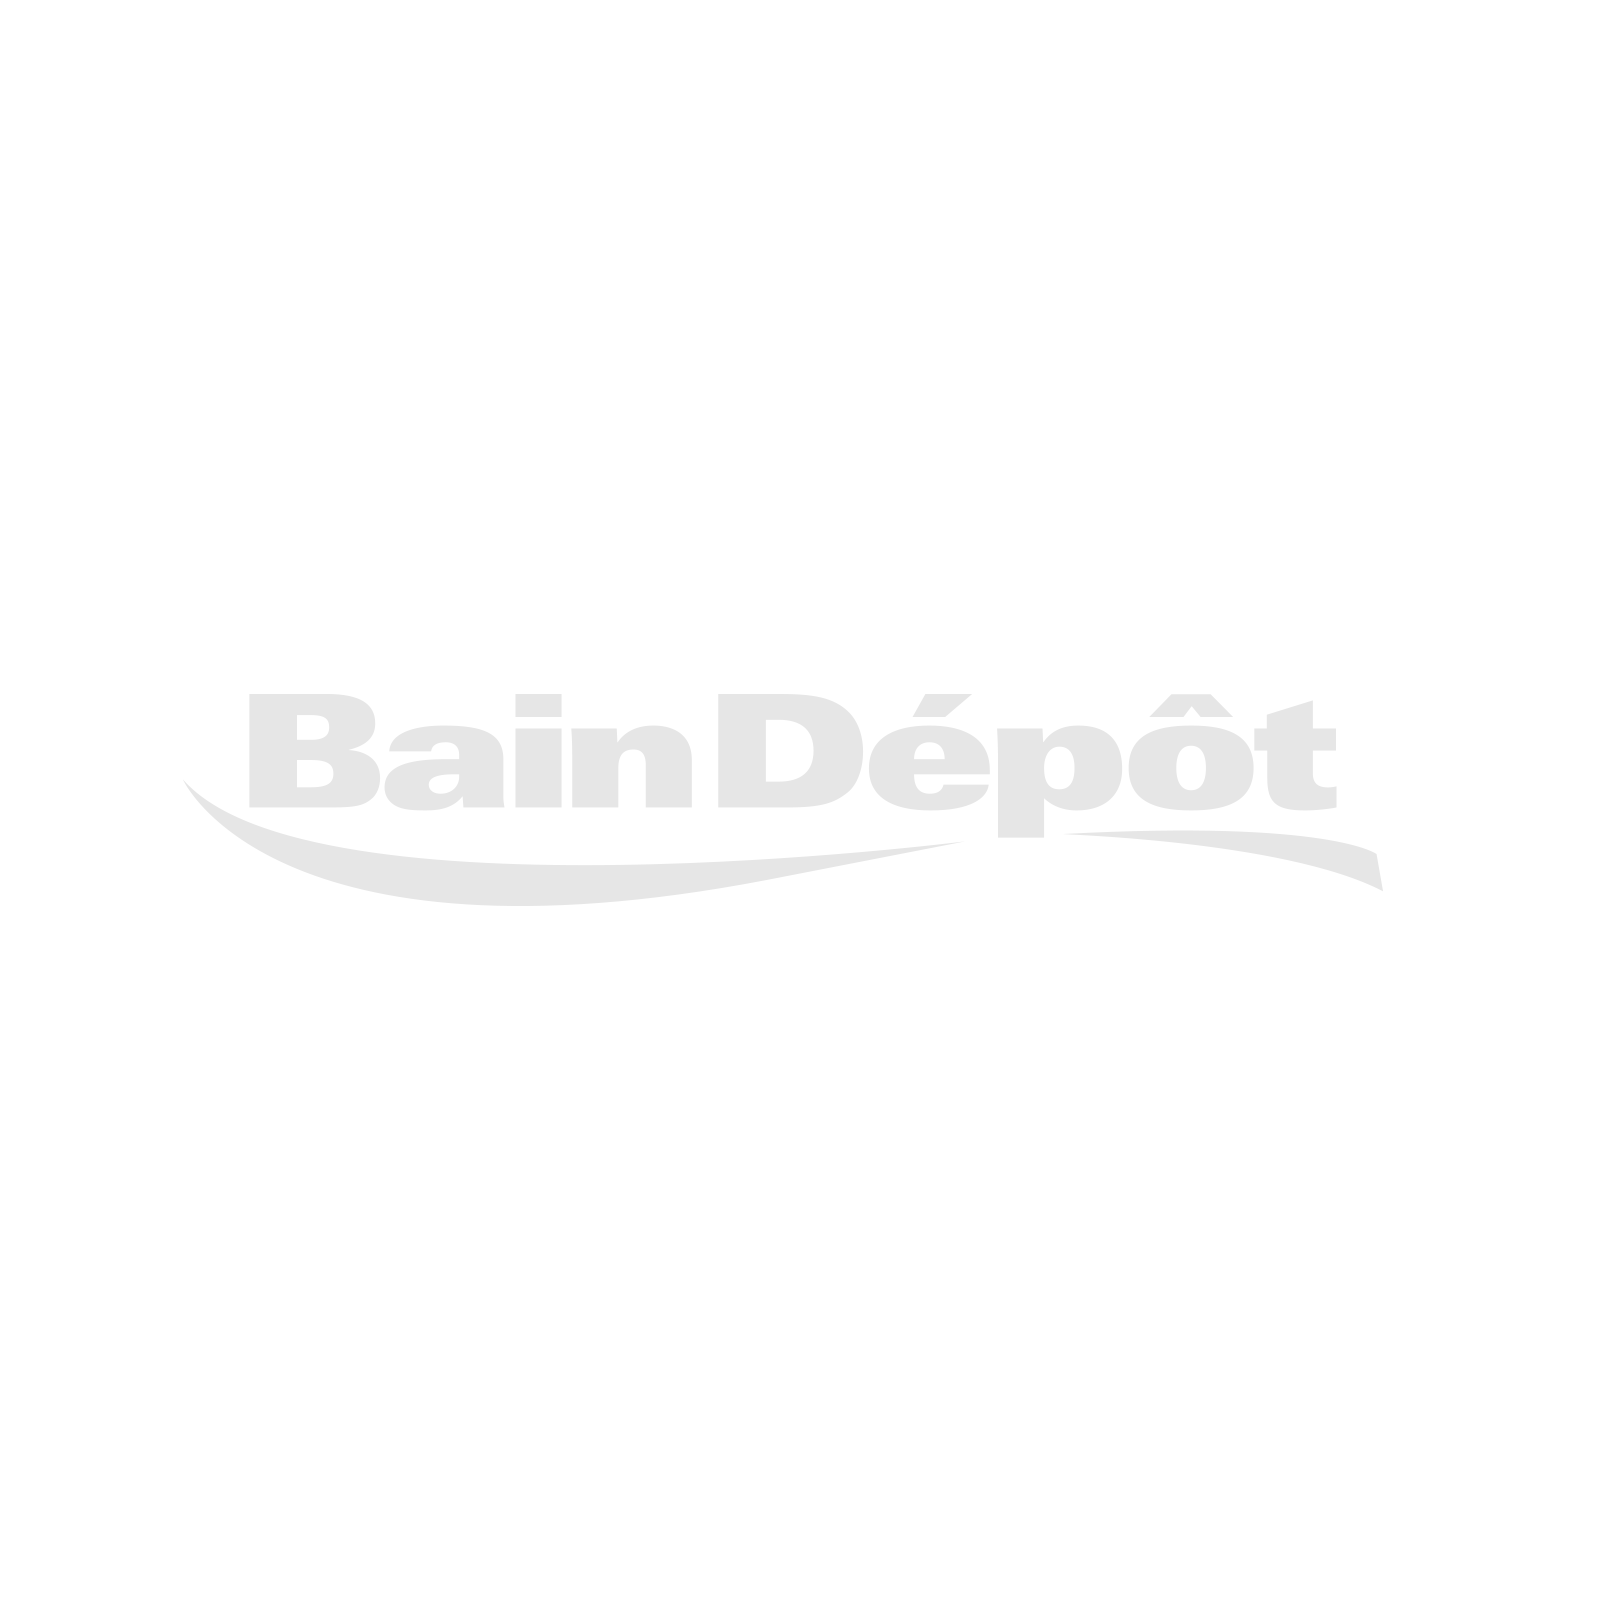 Rounded chrome freestanding bathtub faucet with 2 handles